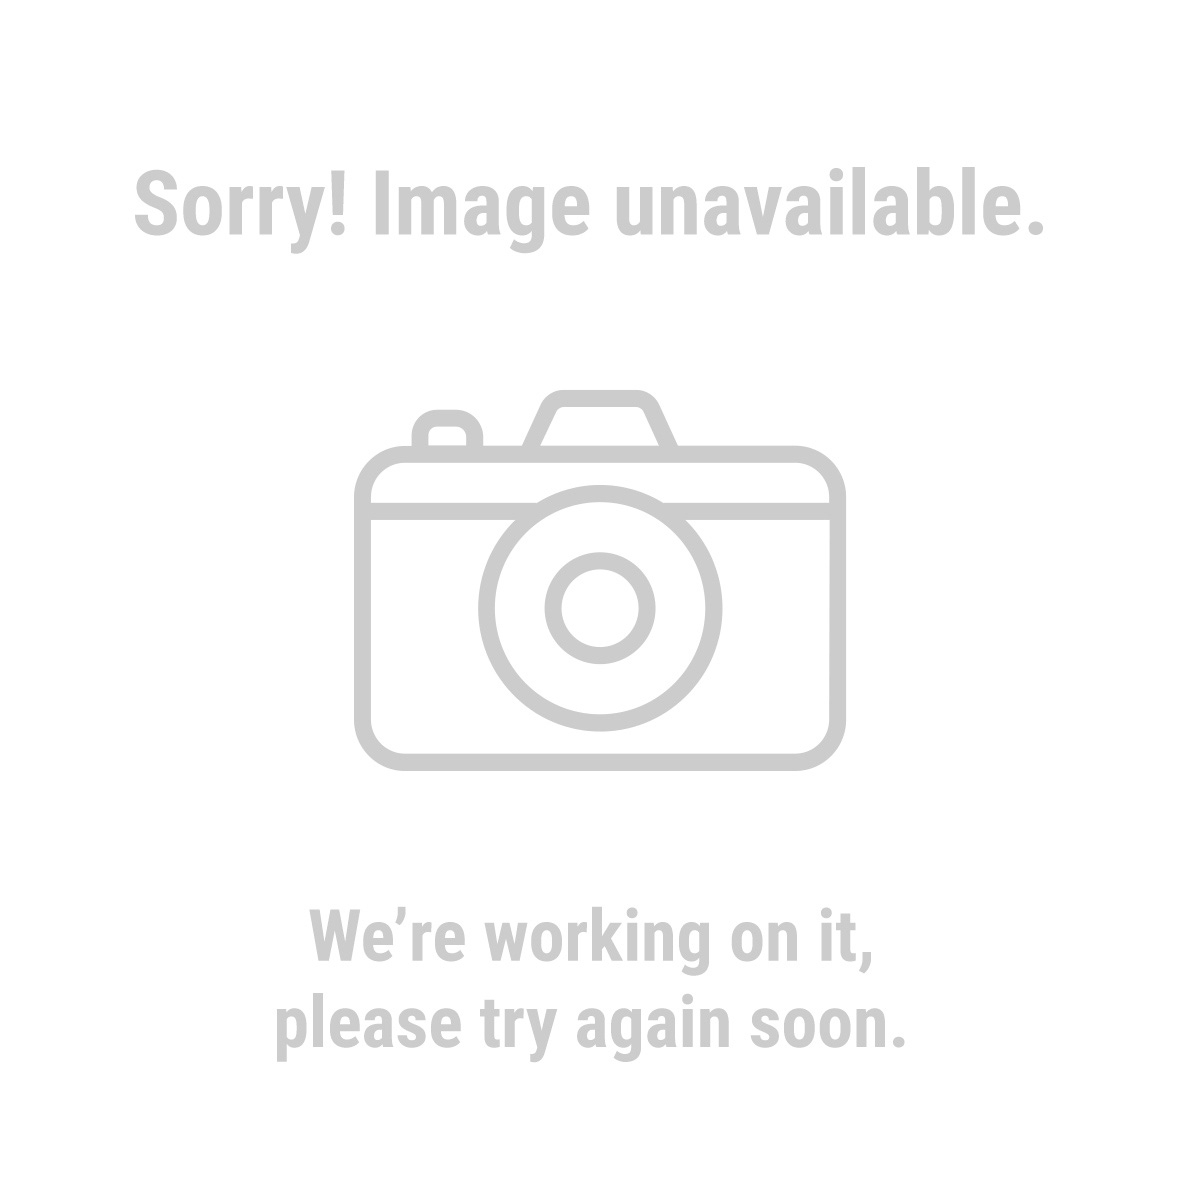 Haul Master Automotive 92655 500 Lb. Capacity Aluminum Cargo Carrier